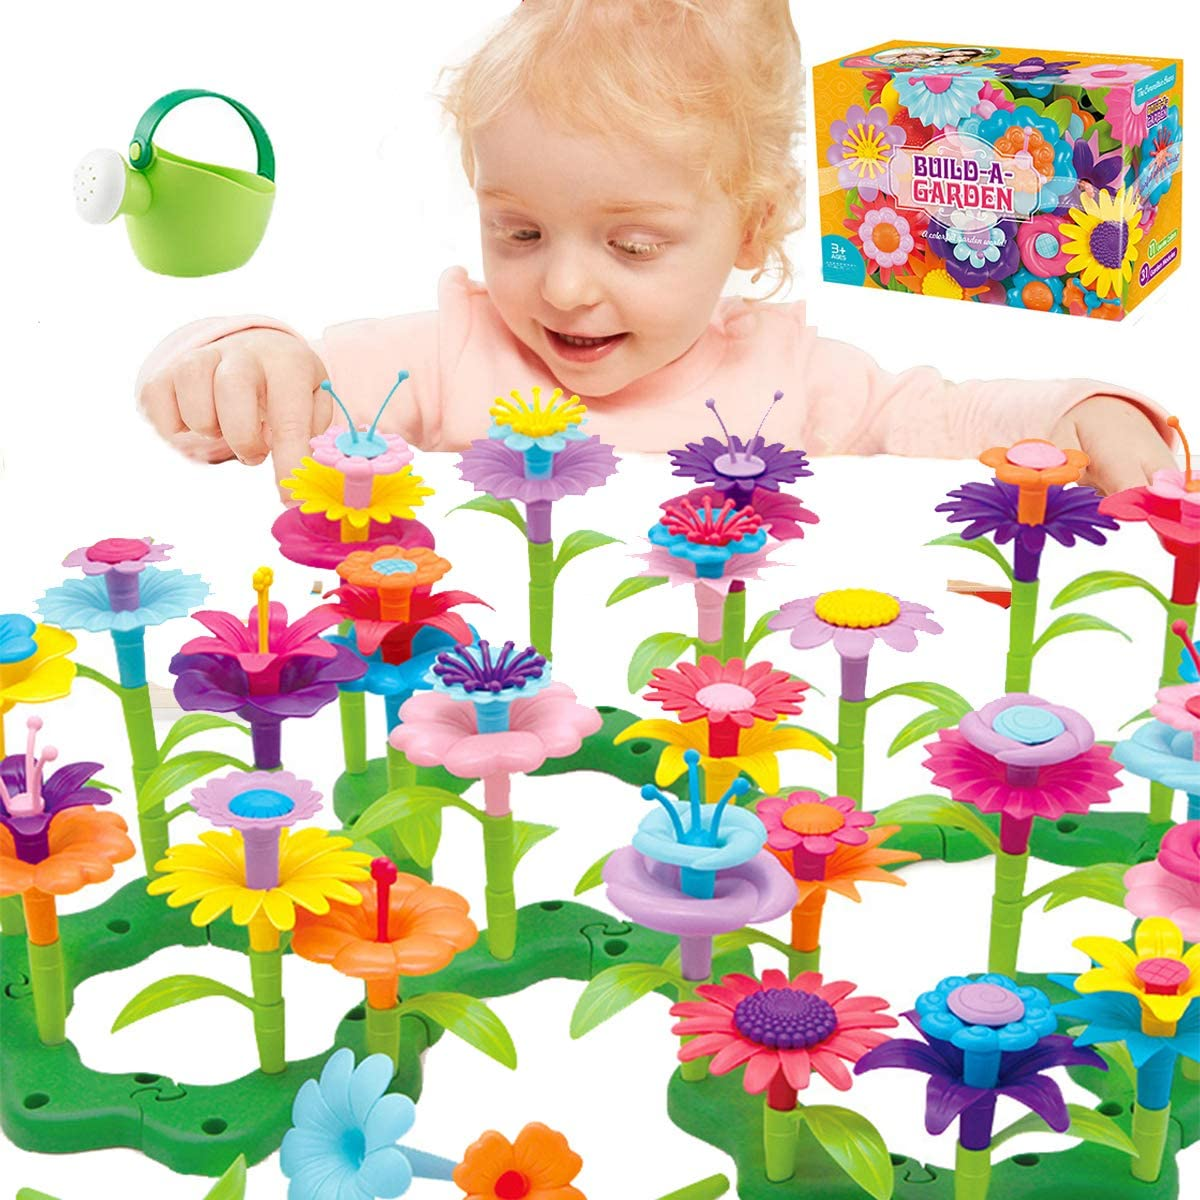 Kingho Flower Garden Building Toys for 3 4 5 6 7 Years Old Girls STEM Gardening Pretend Toy Gift for Kids Toddlers Stacking Game Educational Activity Playset for Preschool Children (Large)